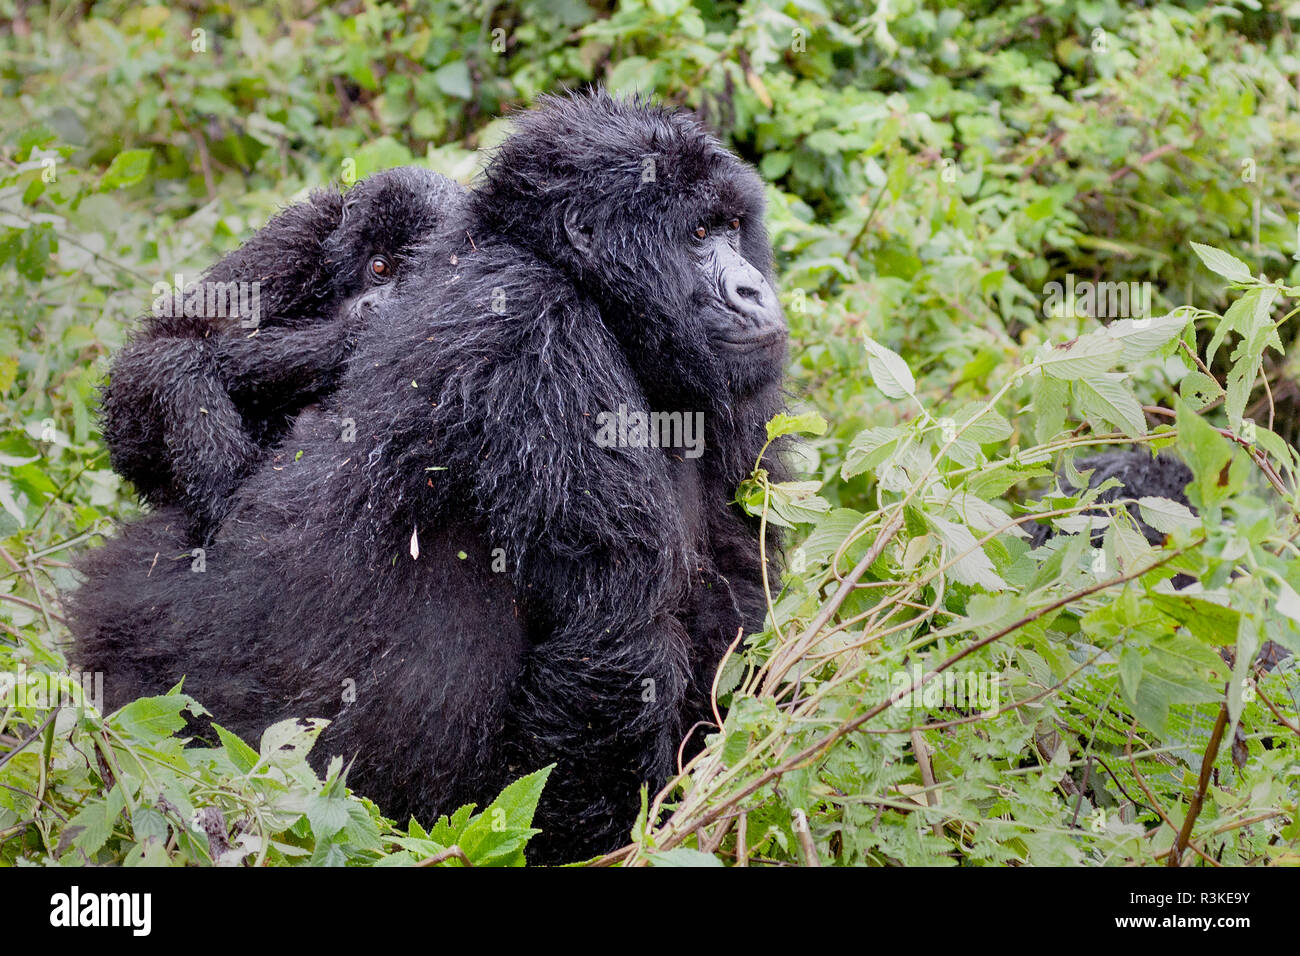 Virunga Mountains, Rwanda, Africa. Mountain Gorillas. - Stock Image